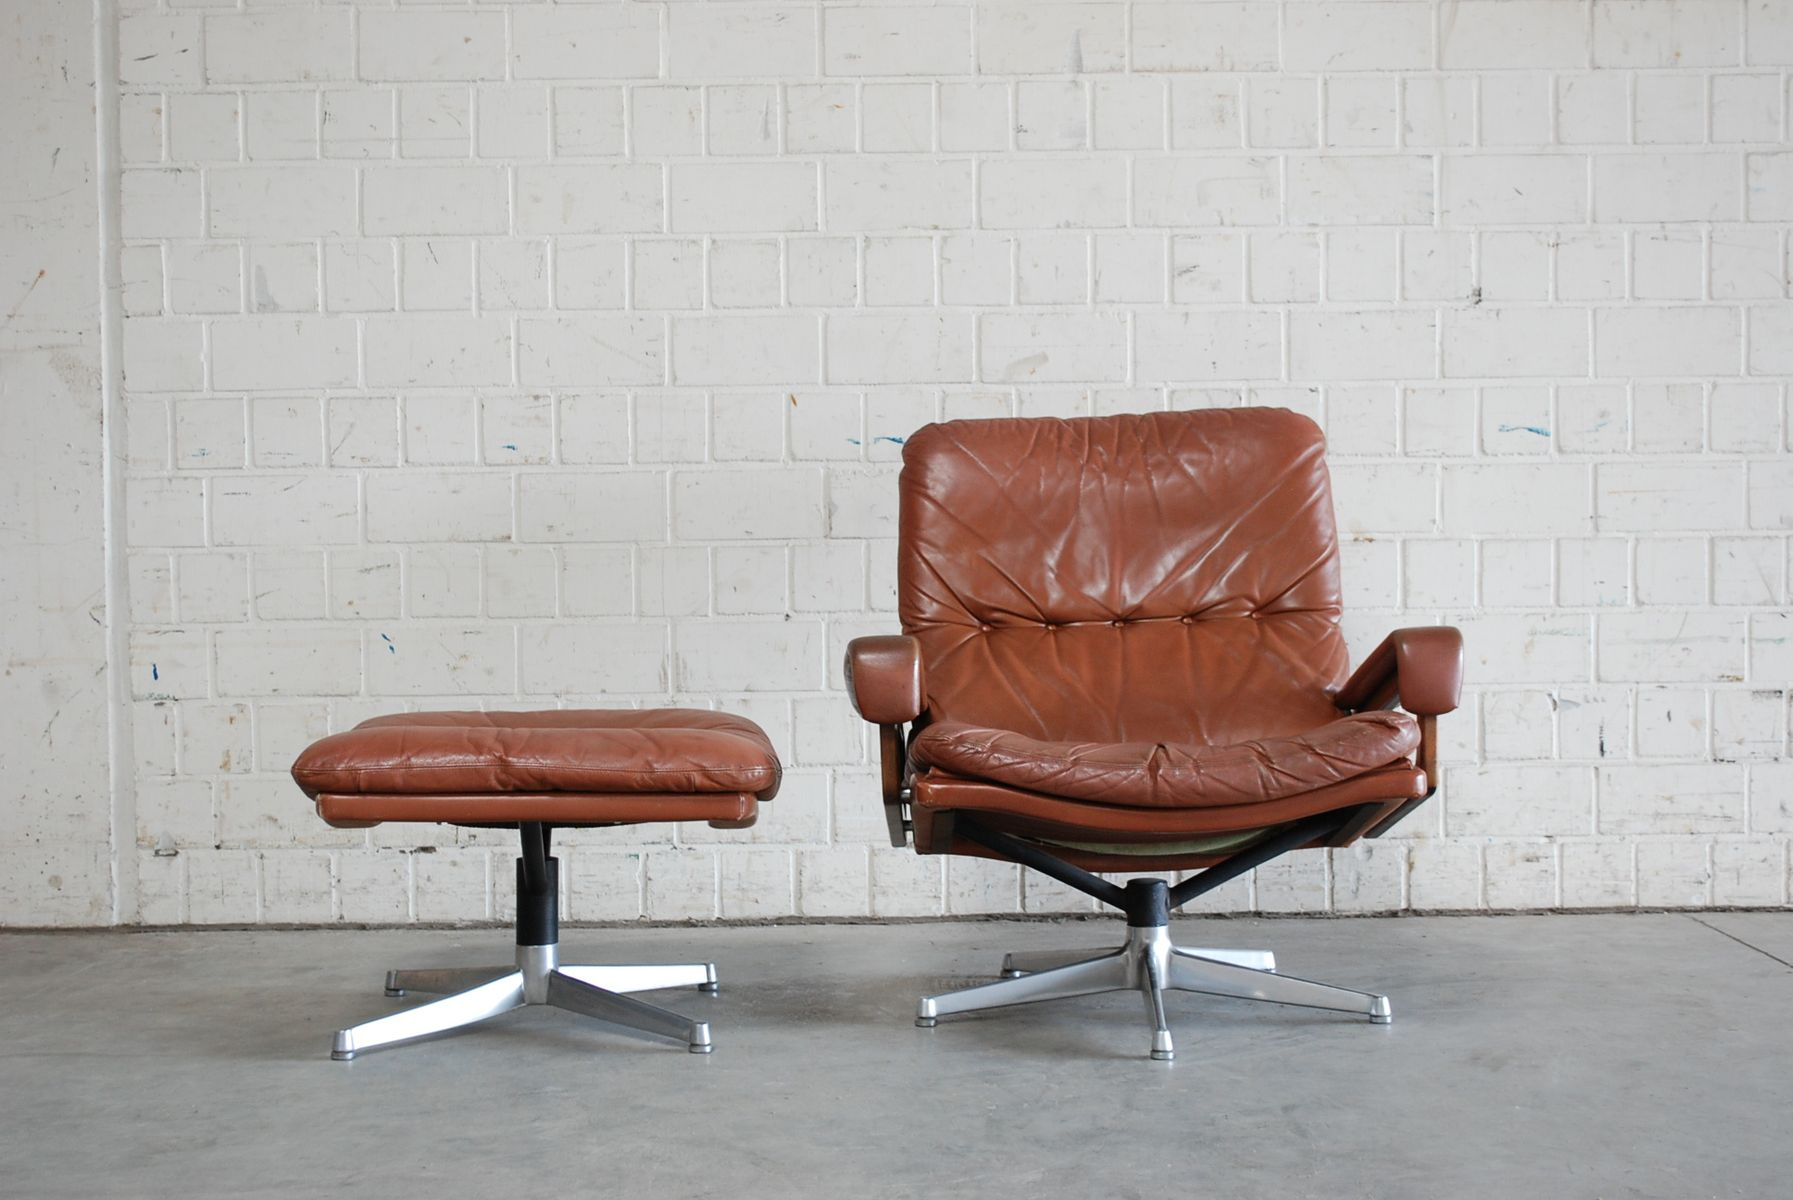 Vintage Swivel Chair with Ottoman by André Vandenbeuck for